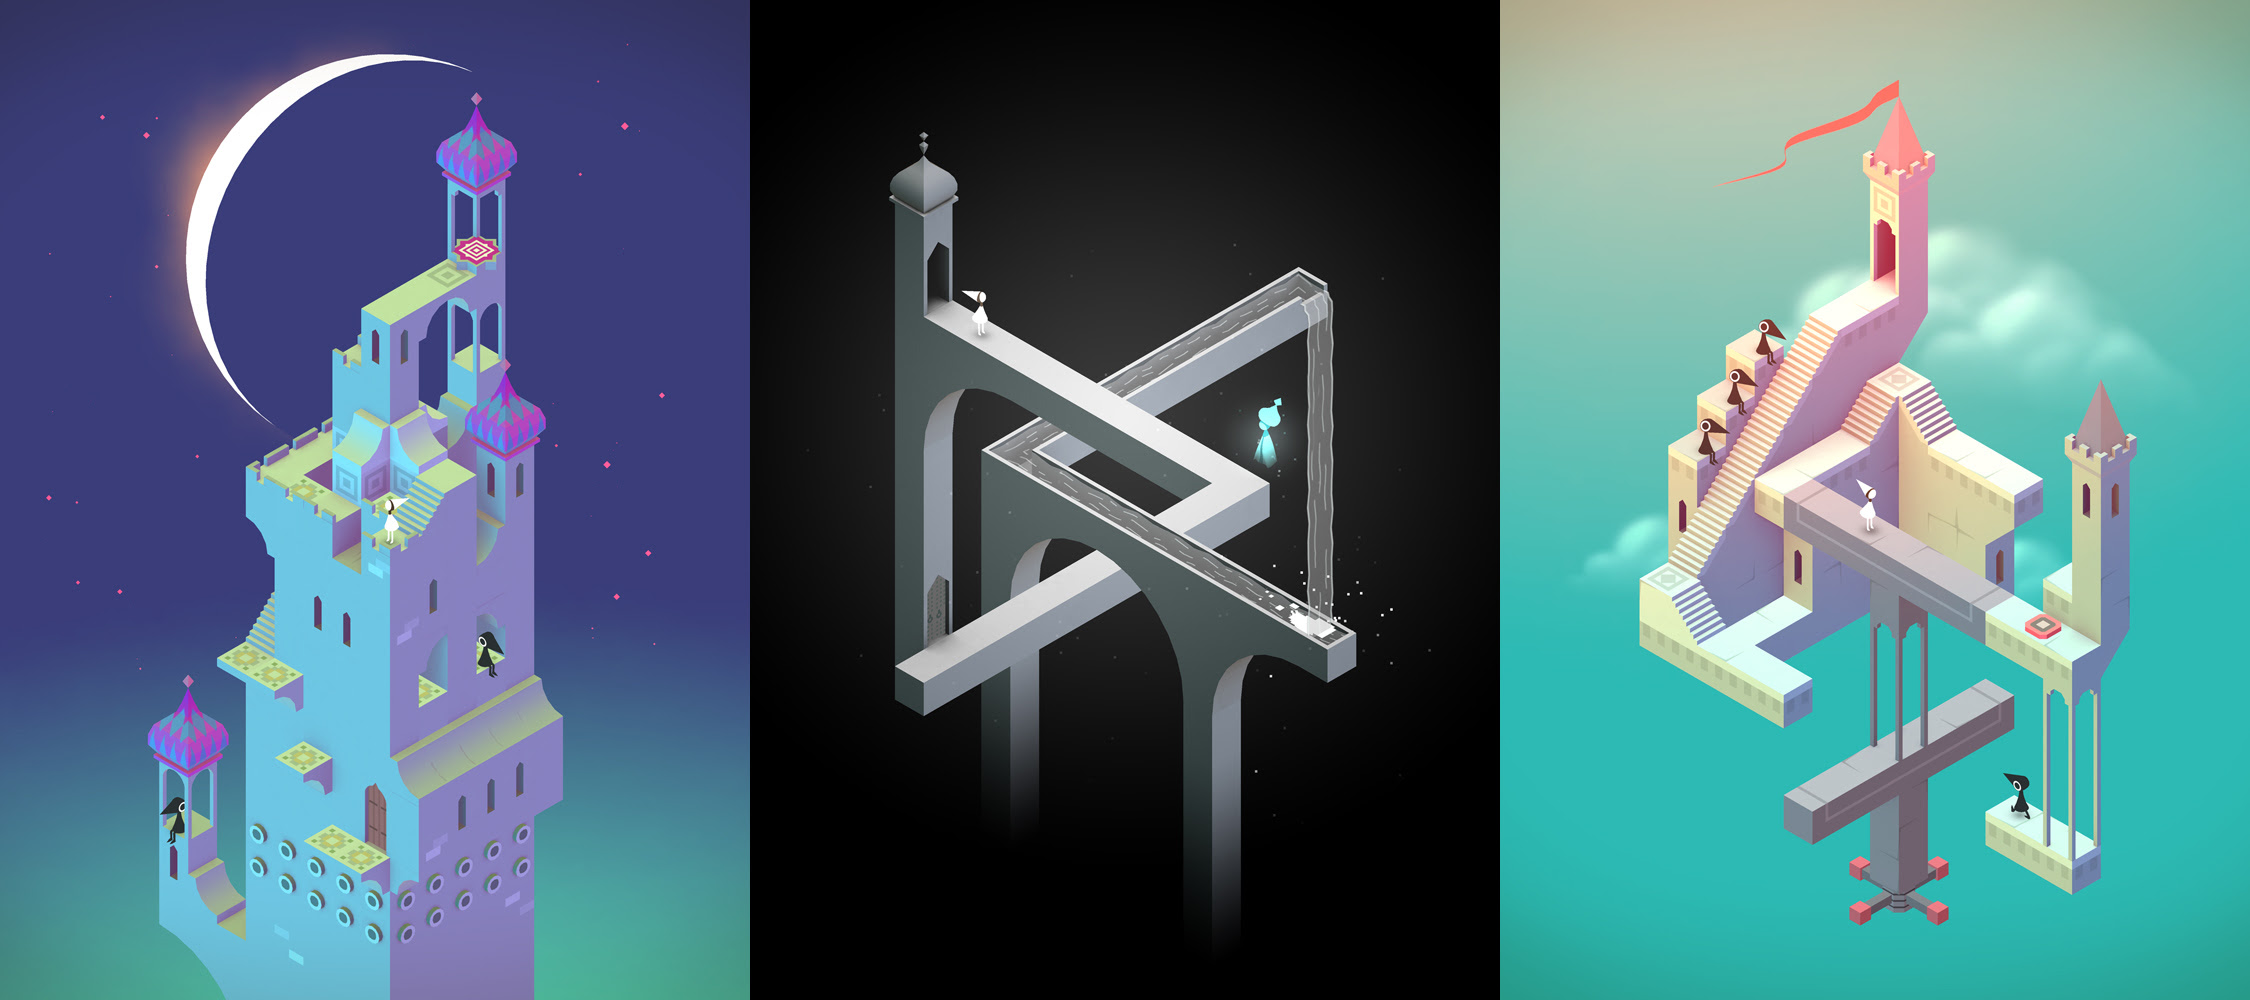 Monument Valley 2 just popped up on iOS screenshot